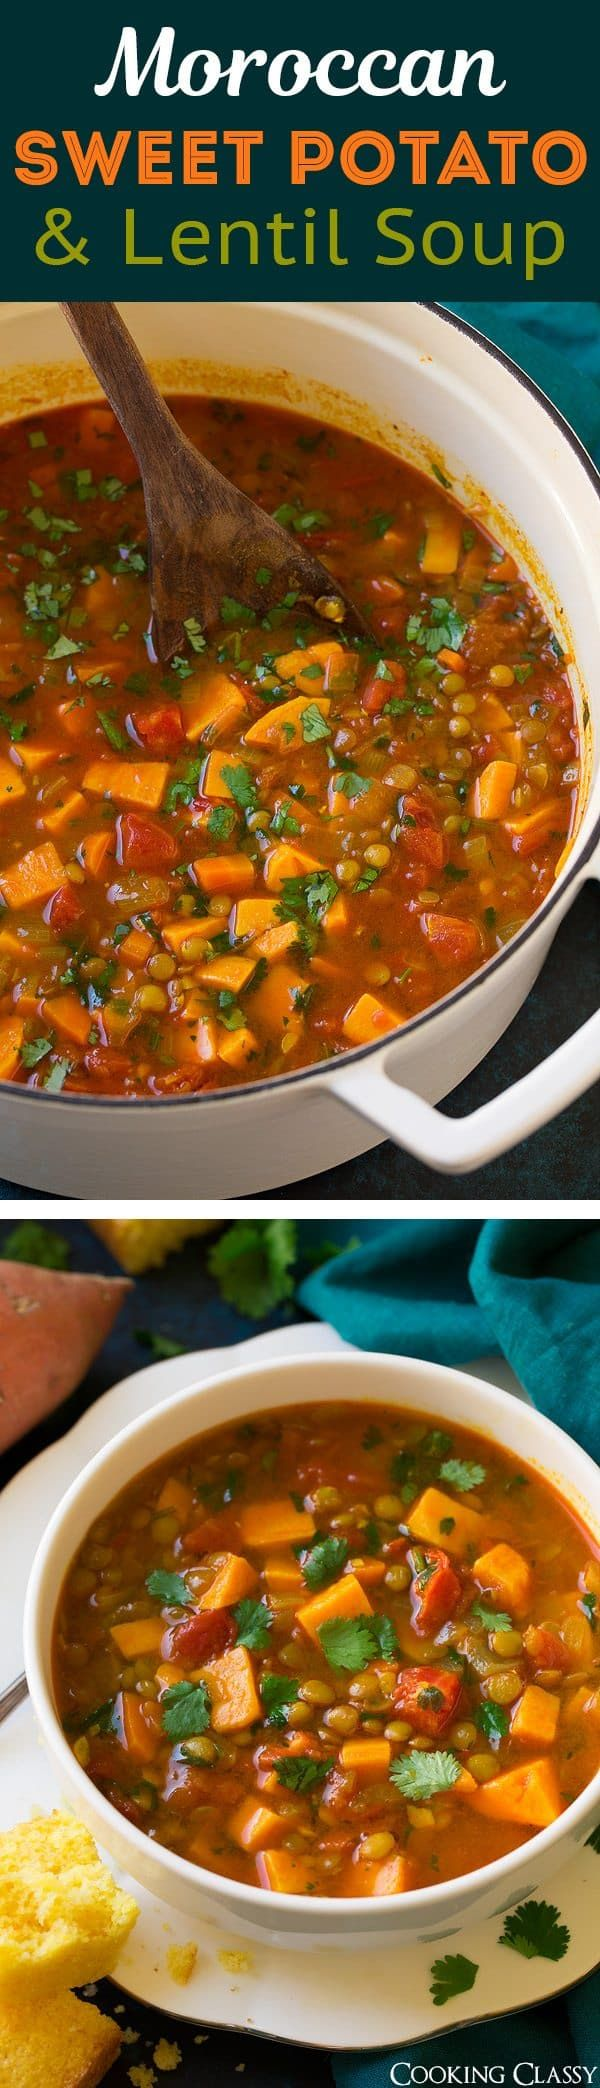 Moroccan Sweet Potato and Lentil Soup | Cooking Classy - can use squash instead of sweet potatoes, and can slow cook on low for 7-8 hours